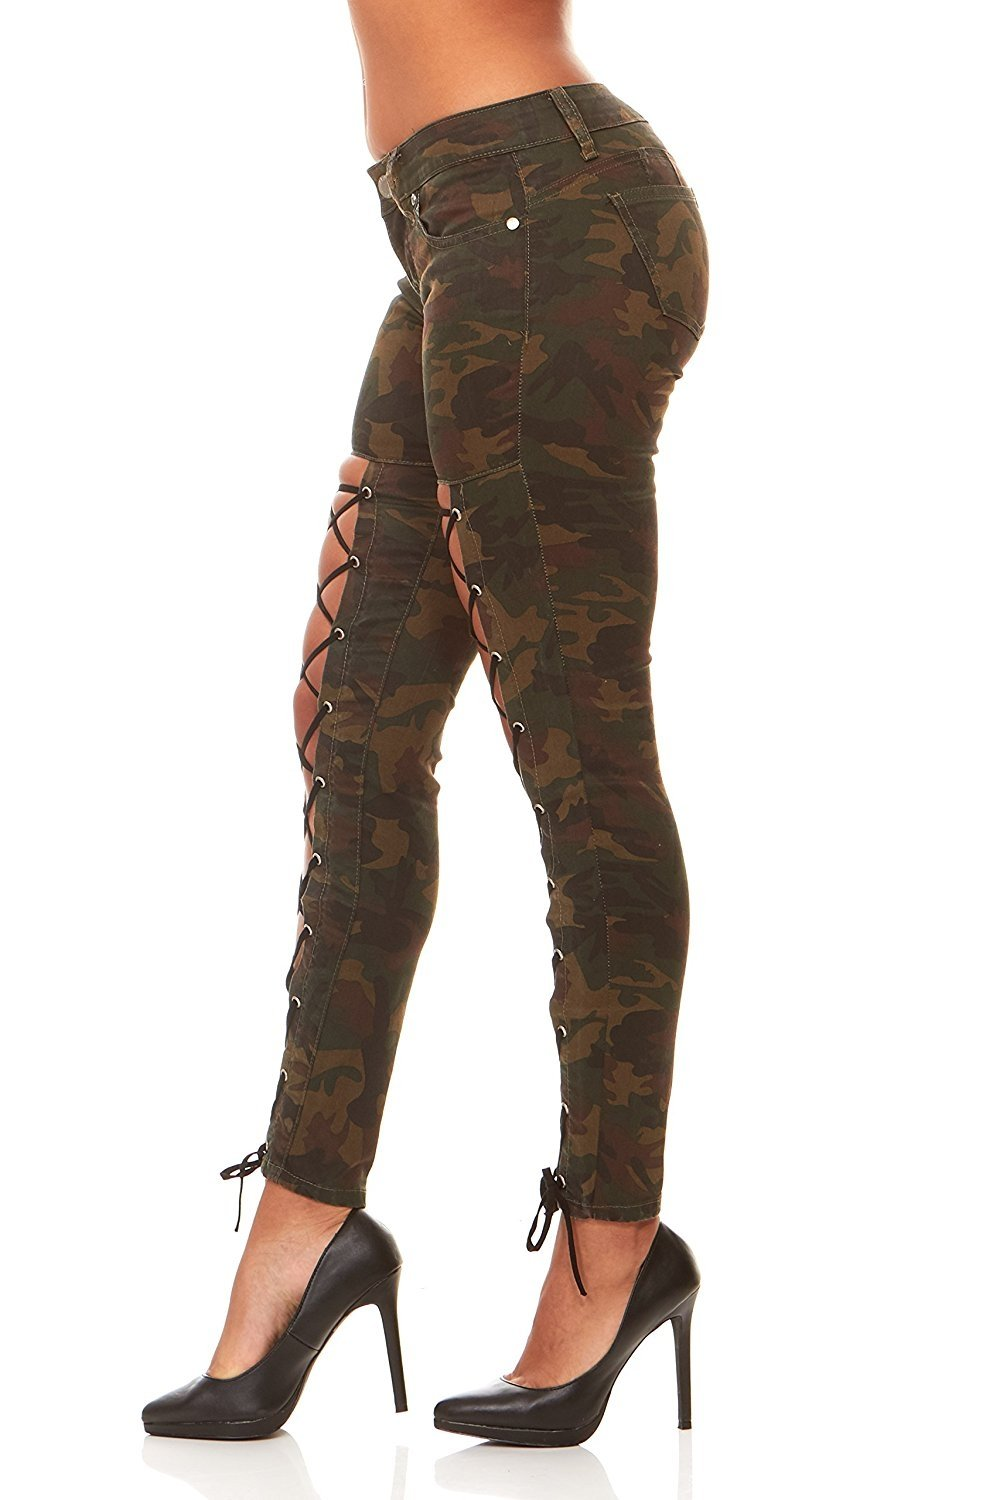 Skinny Camouflage jeans for juniors best photo